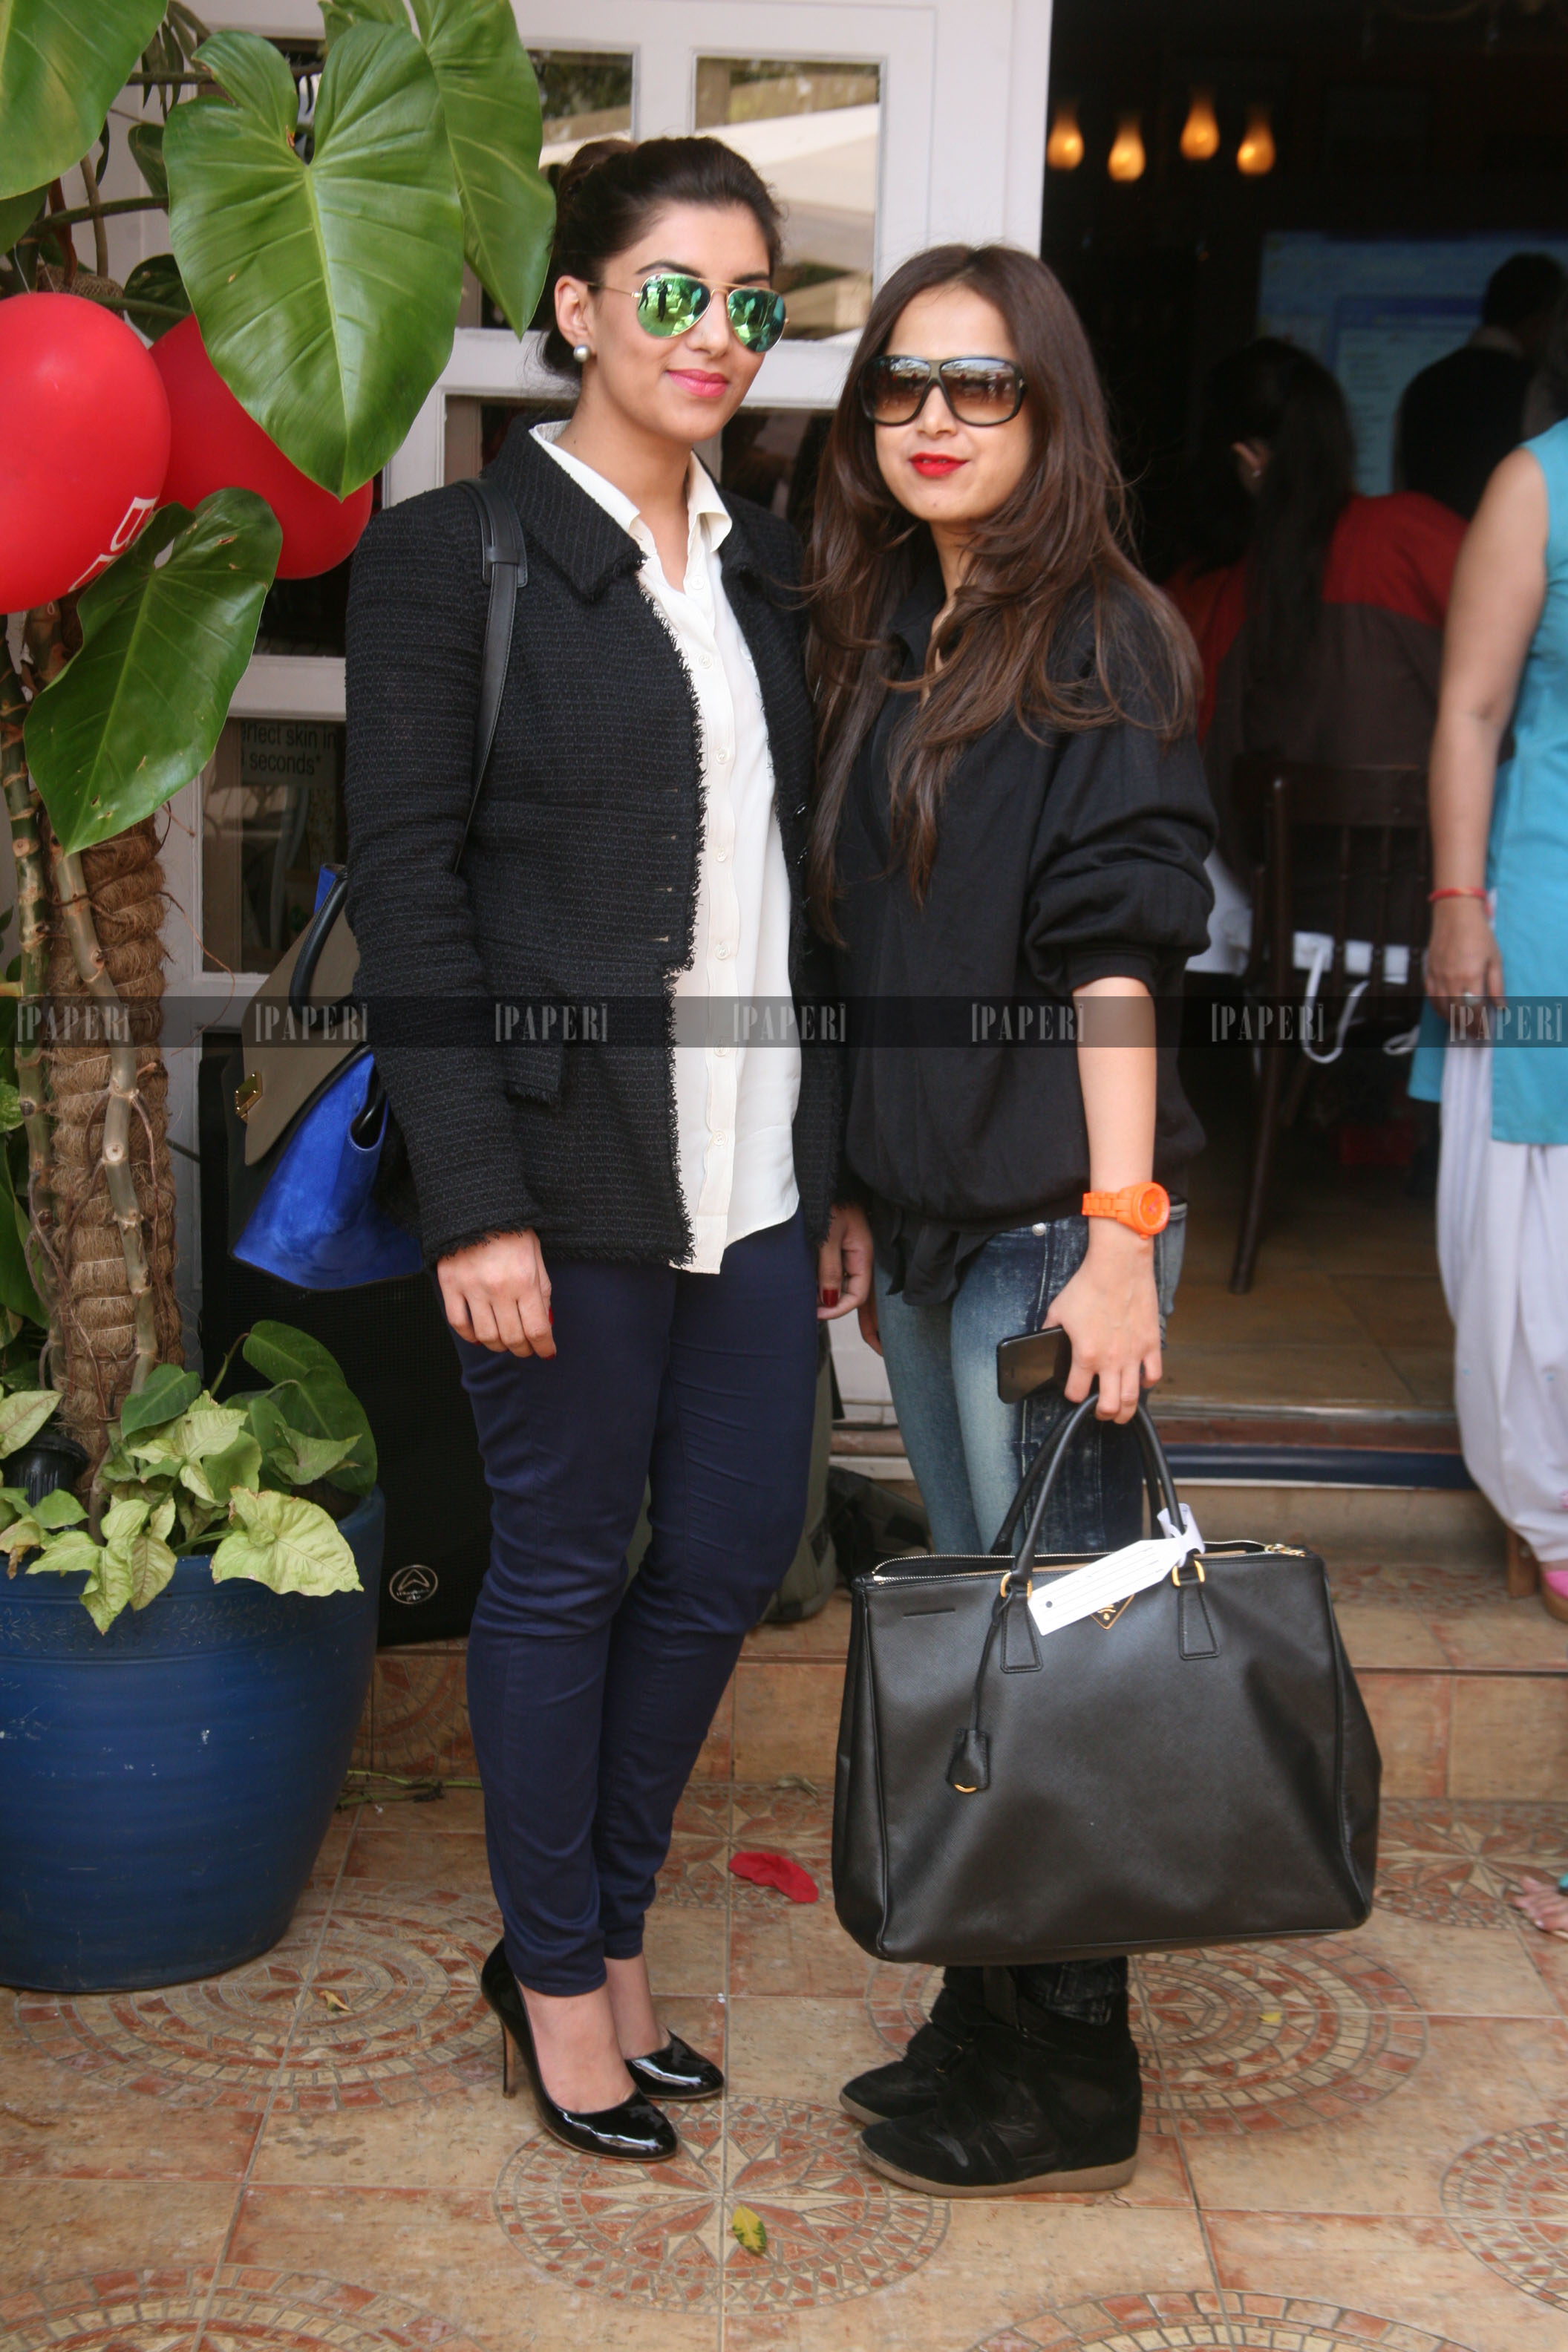 Meher Tareen and Samina Khan